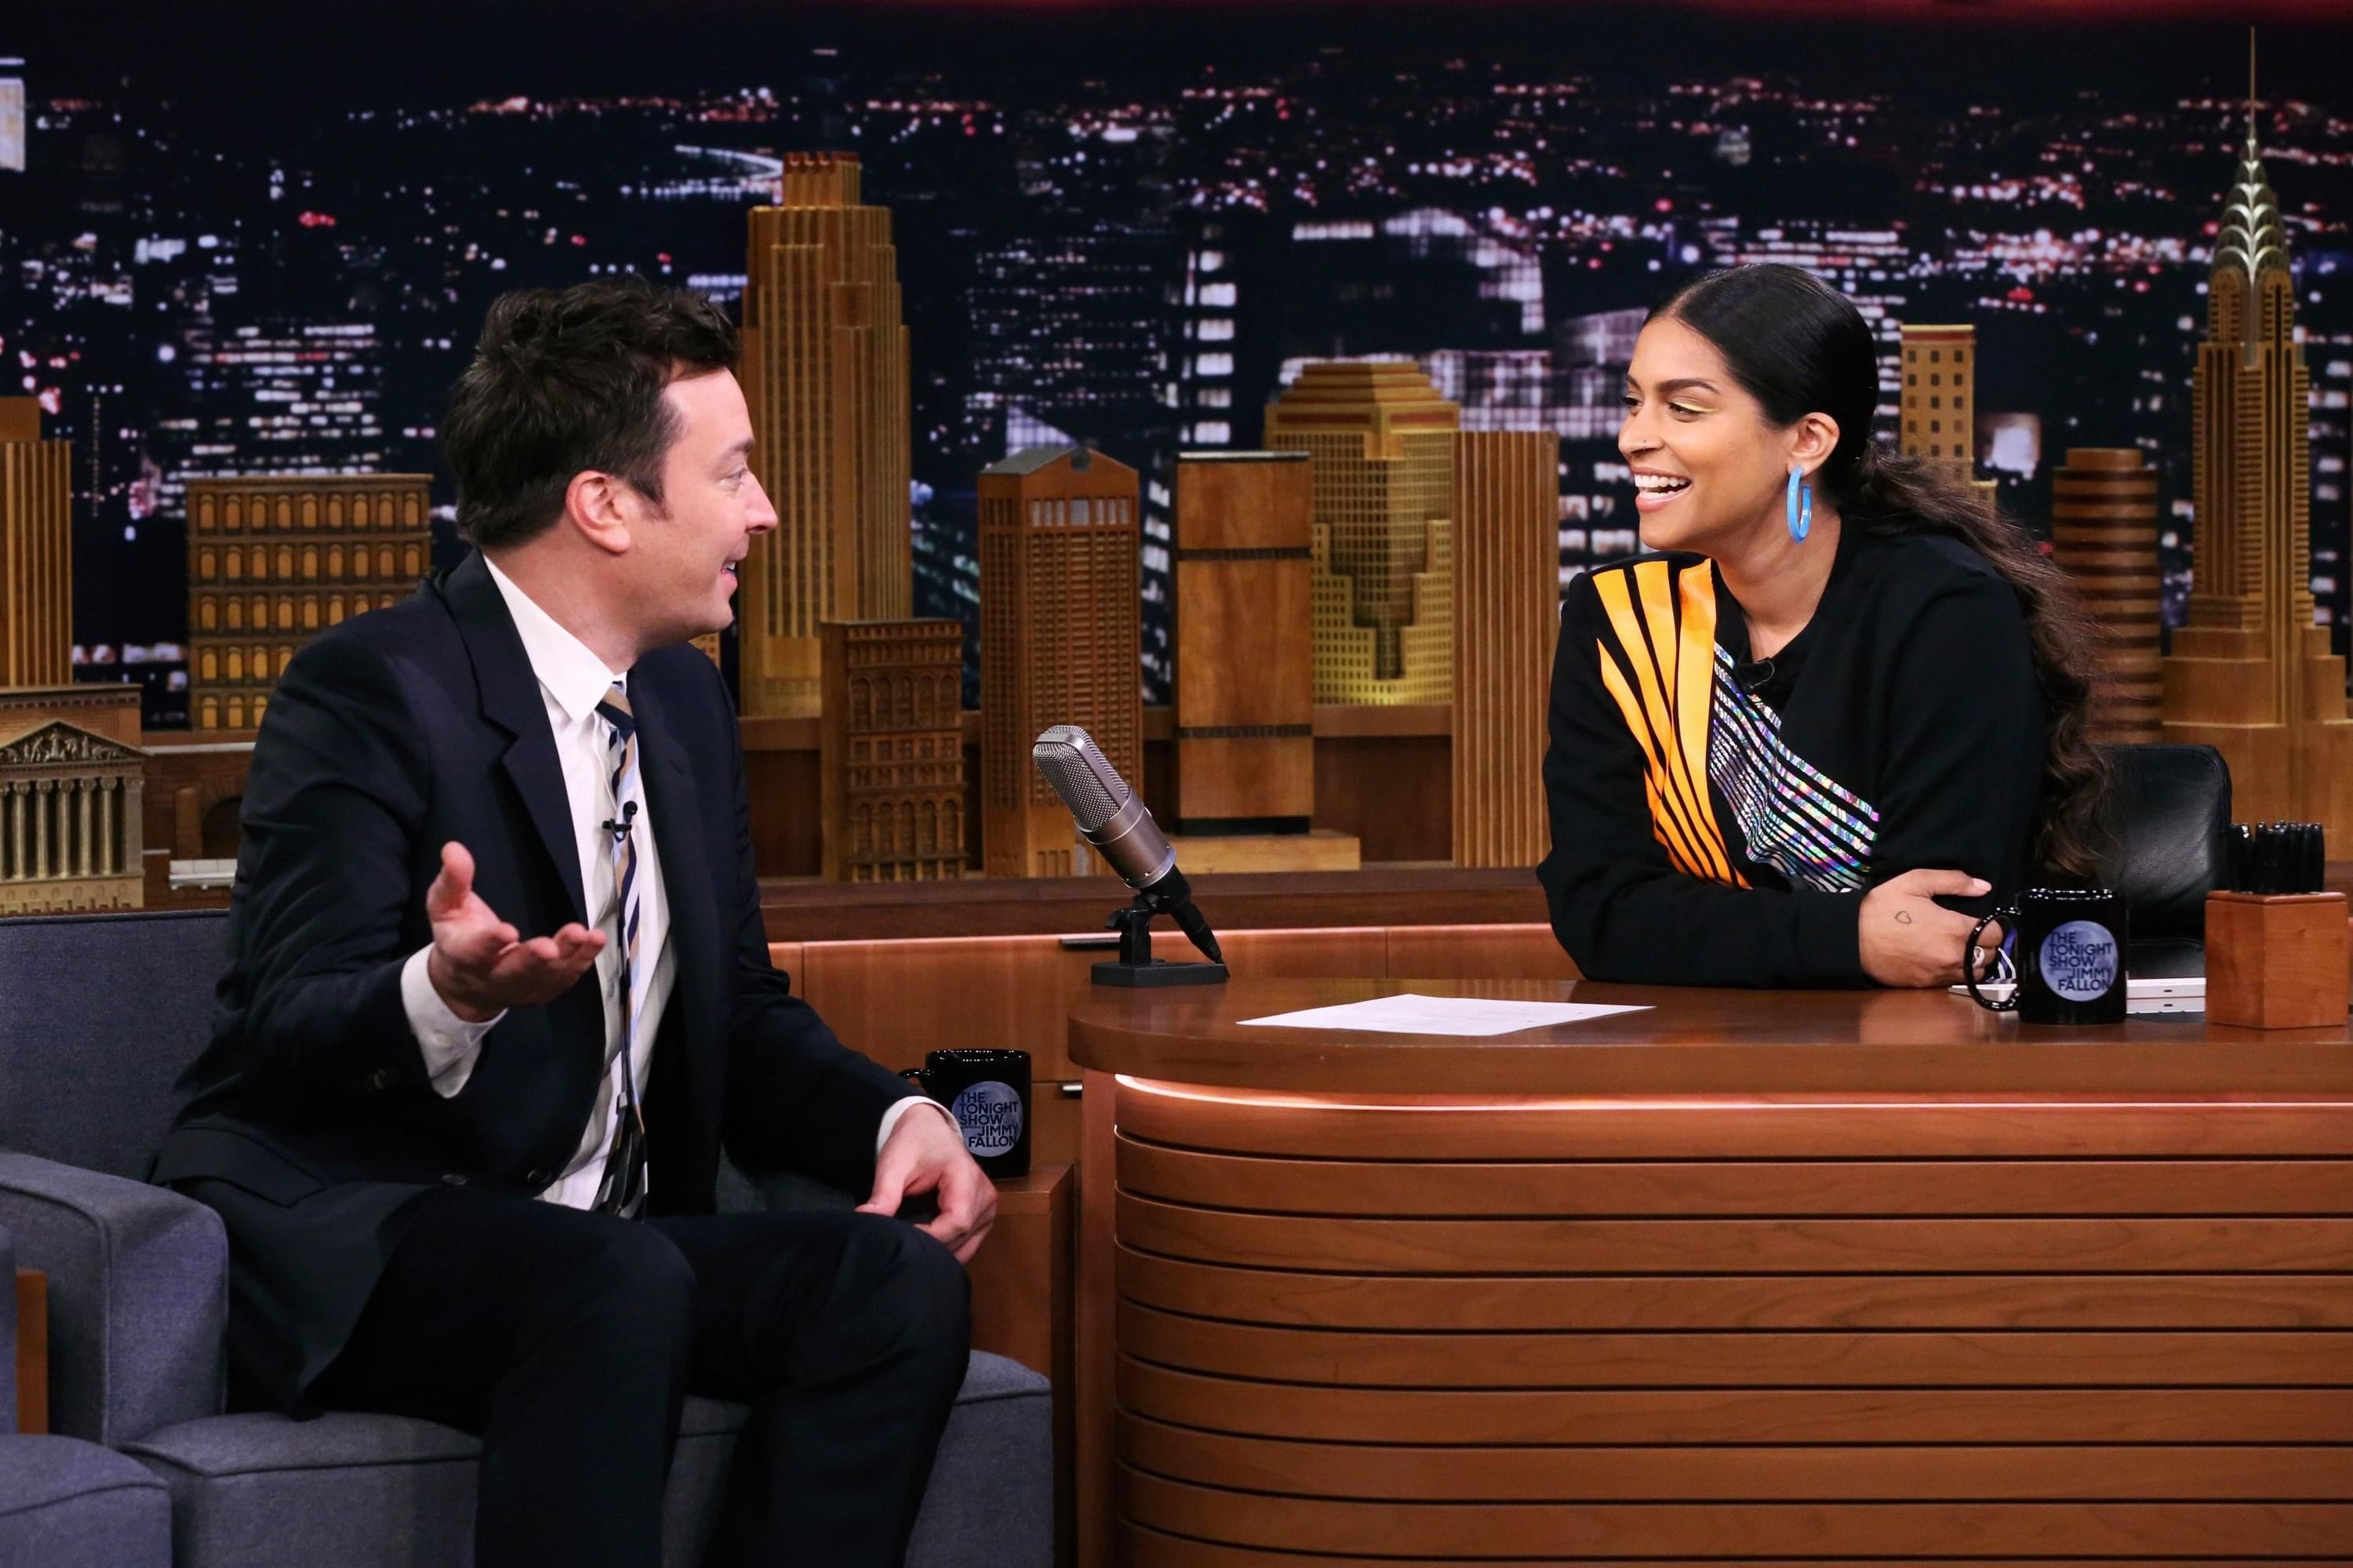 YouTube Star Lilly Singh Becomes First Woman Of Color To Get Her Own Late Night Talk Show